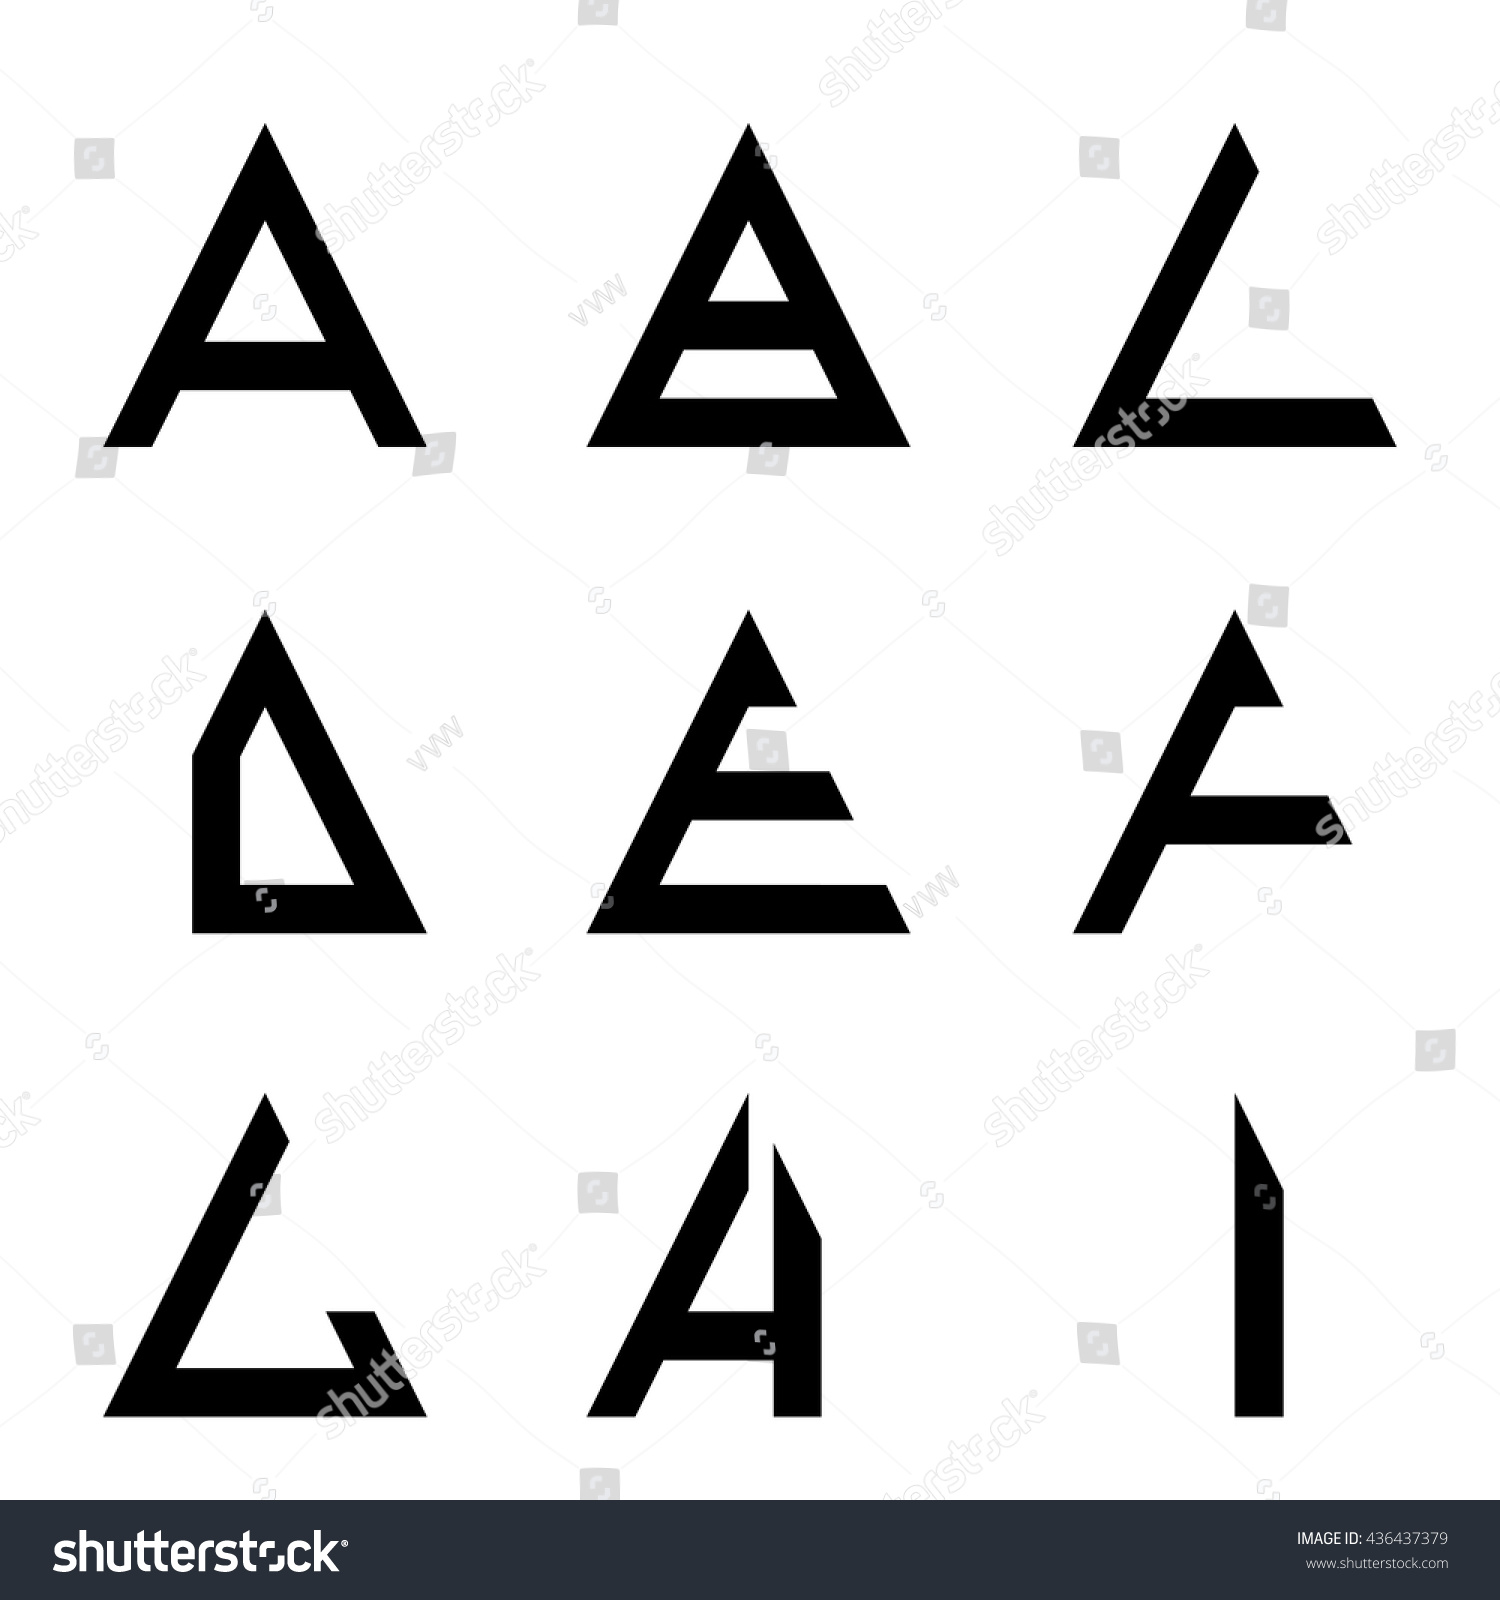 A I Triangle Shapes Alphabet Letters Font Logo Symbol Icon Graphic